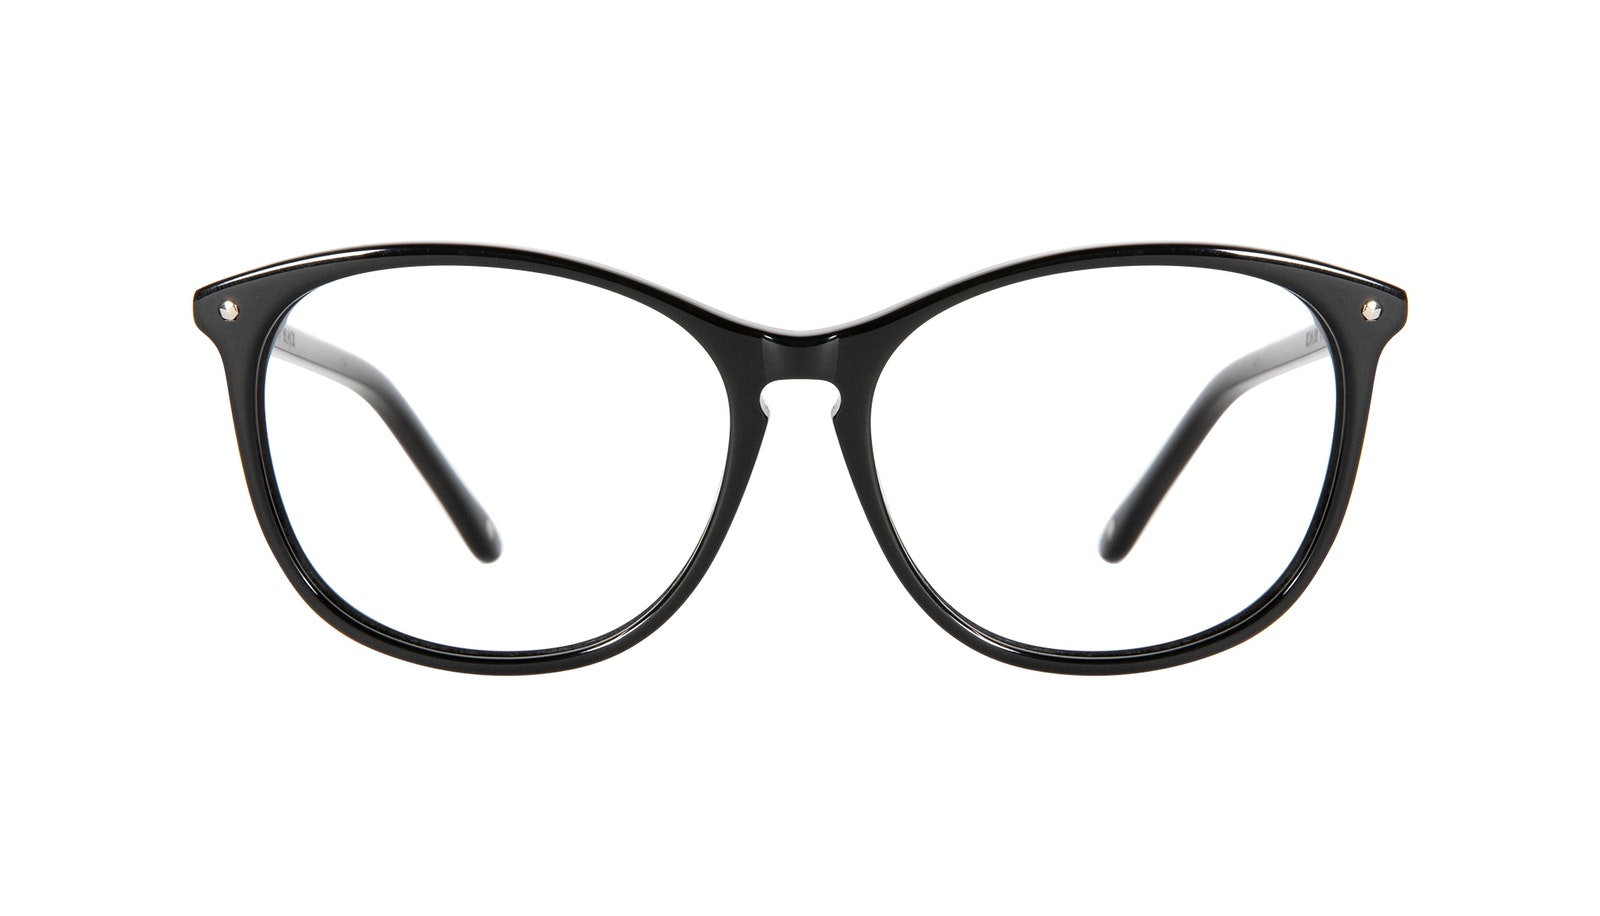 Affordable Fashion Glasses Round Eyeglasses Women Nadine Petite Pitch Black